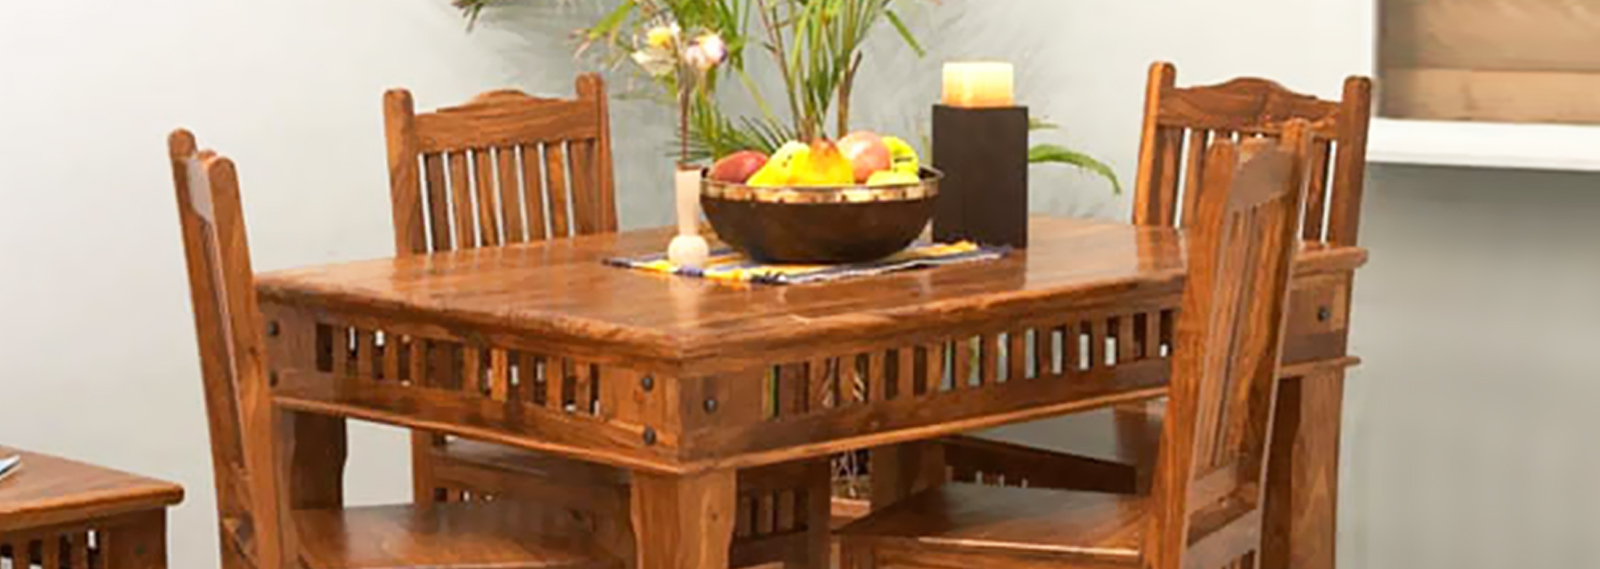 Natural Living Furniture Wooden Sheesham Hardwood Rosewood Lifestyle Furniture Pune And Bangalore